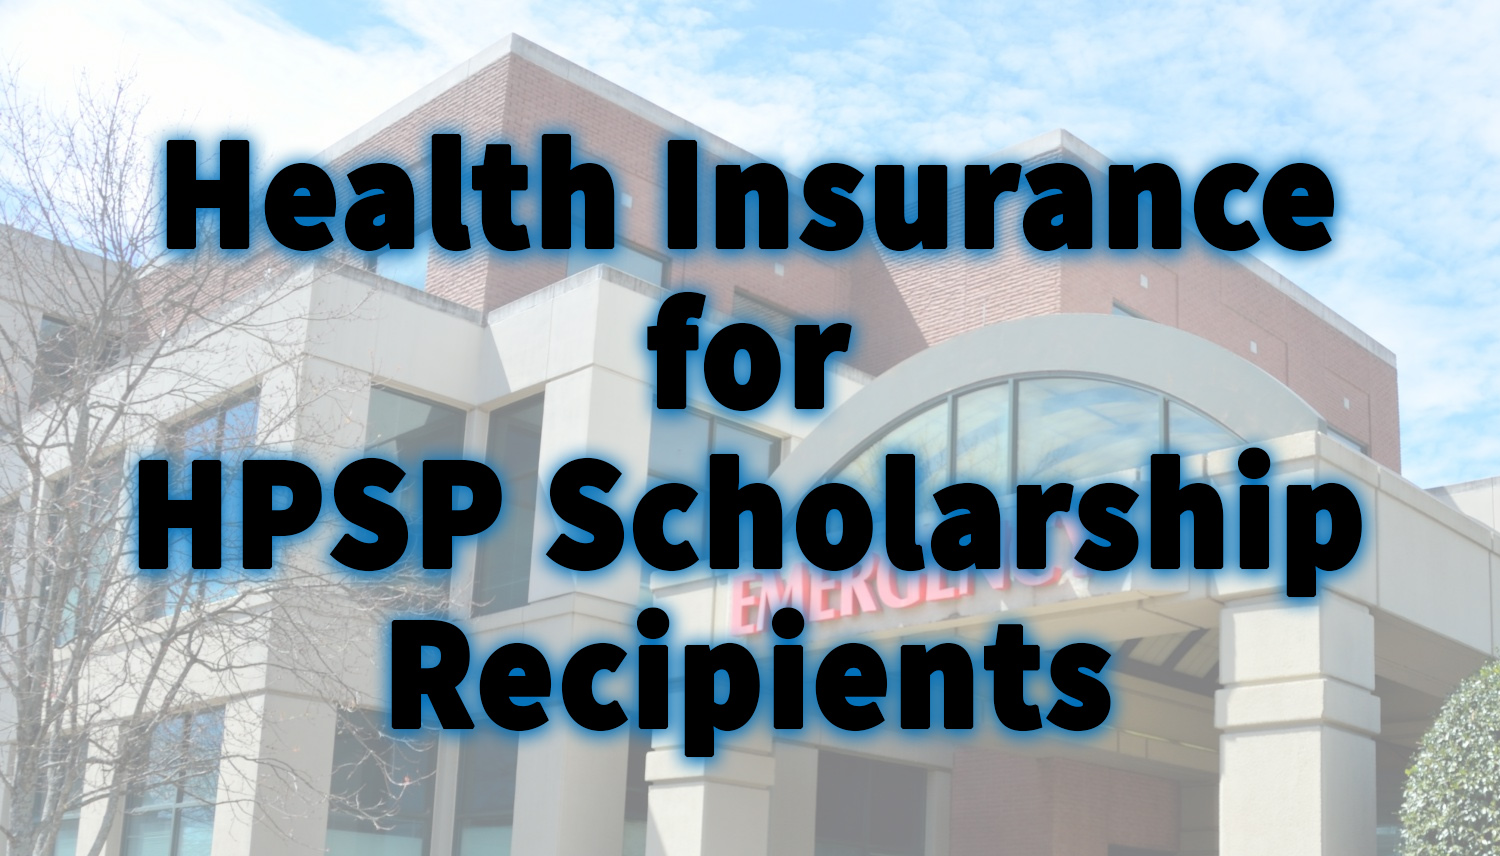 Health Insurance For HPSP Scholarship Recipients